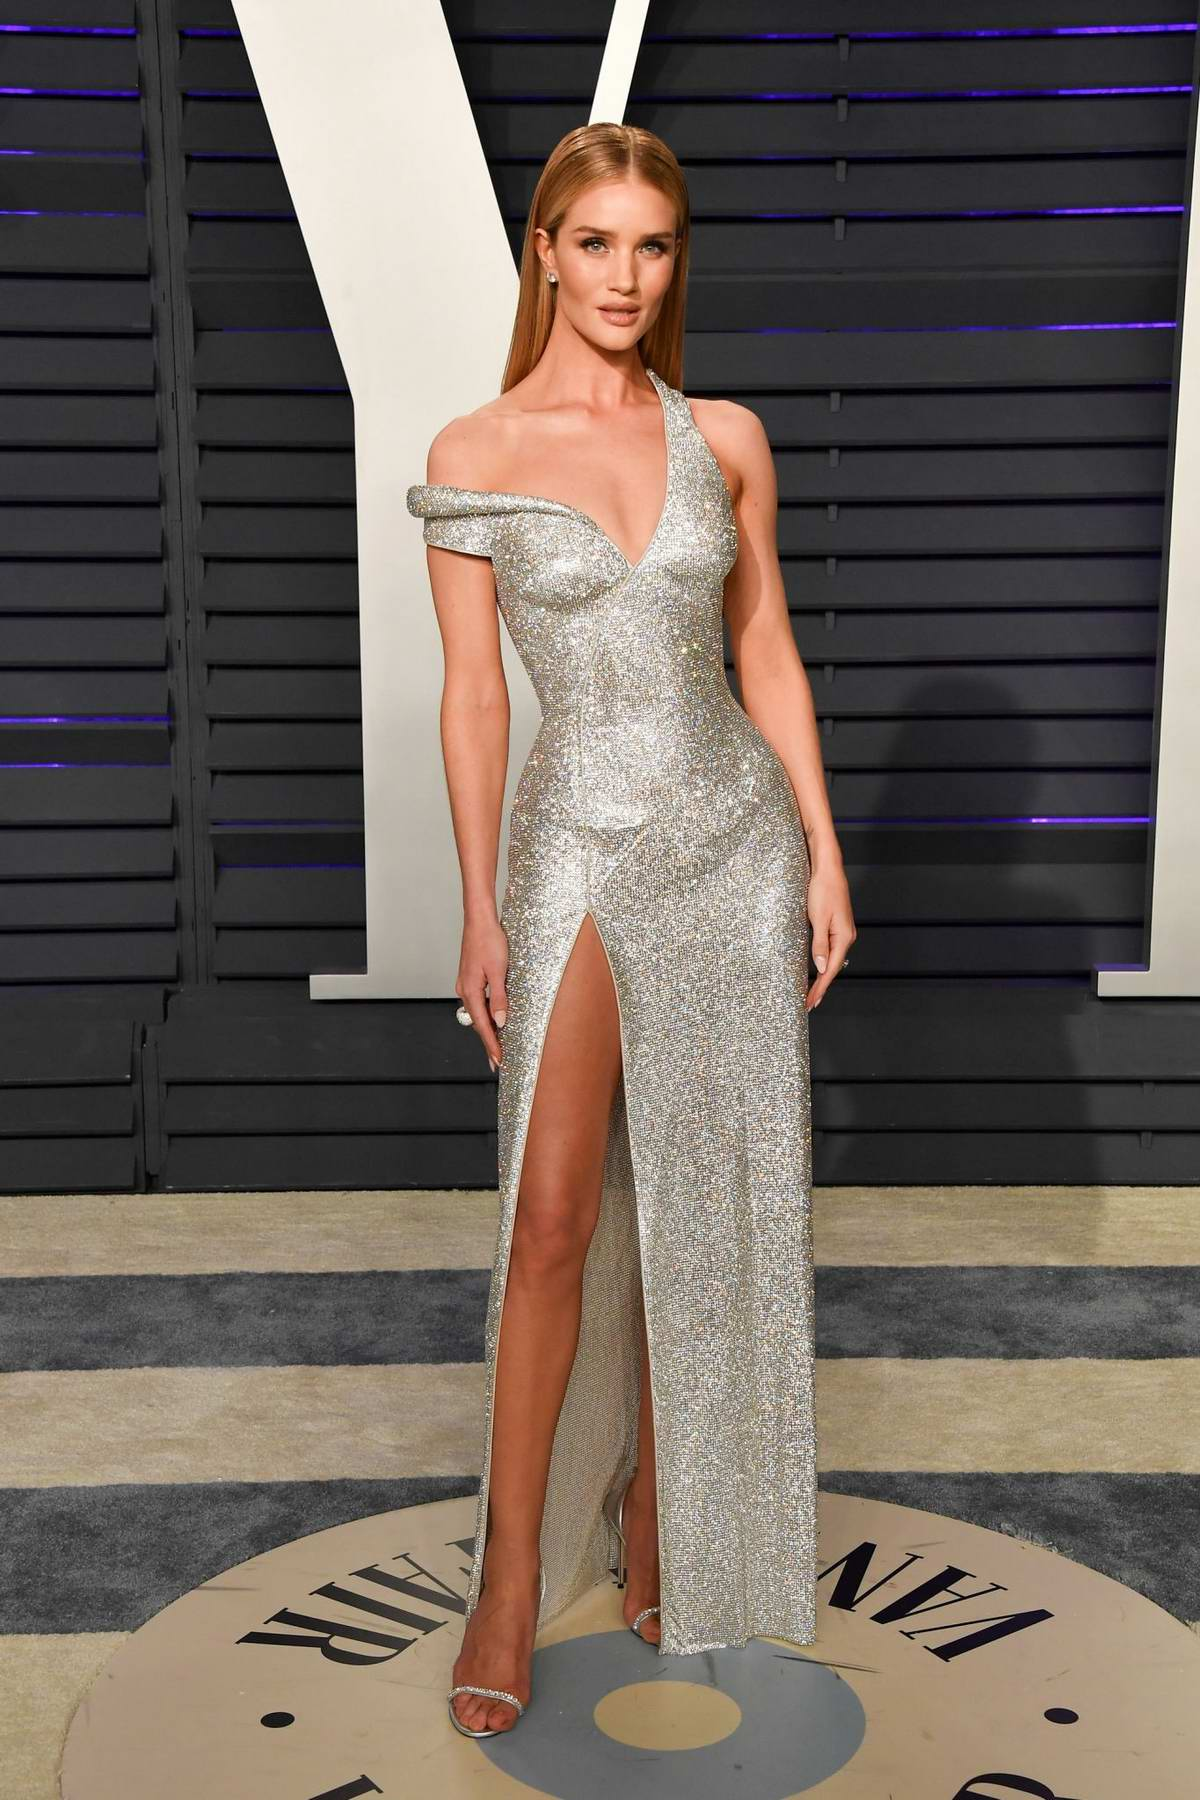 Rosie Huntington-Whiteley attends the Vanity Fair Oscar Party at Wallis Annenberg Center for the Performing Arts in Beverly Hills, California